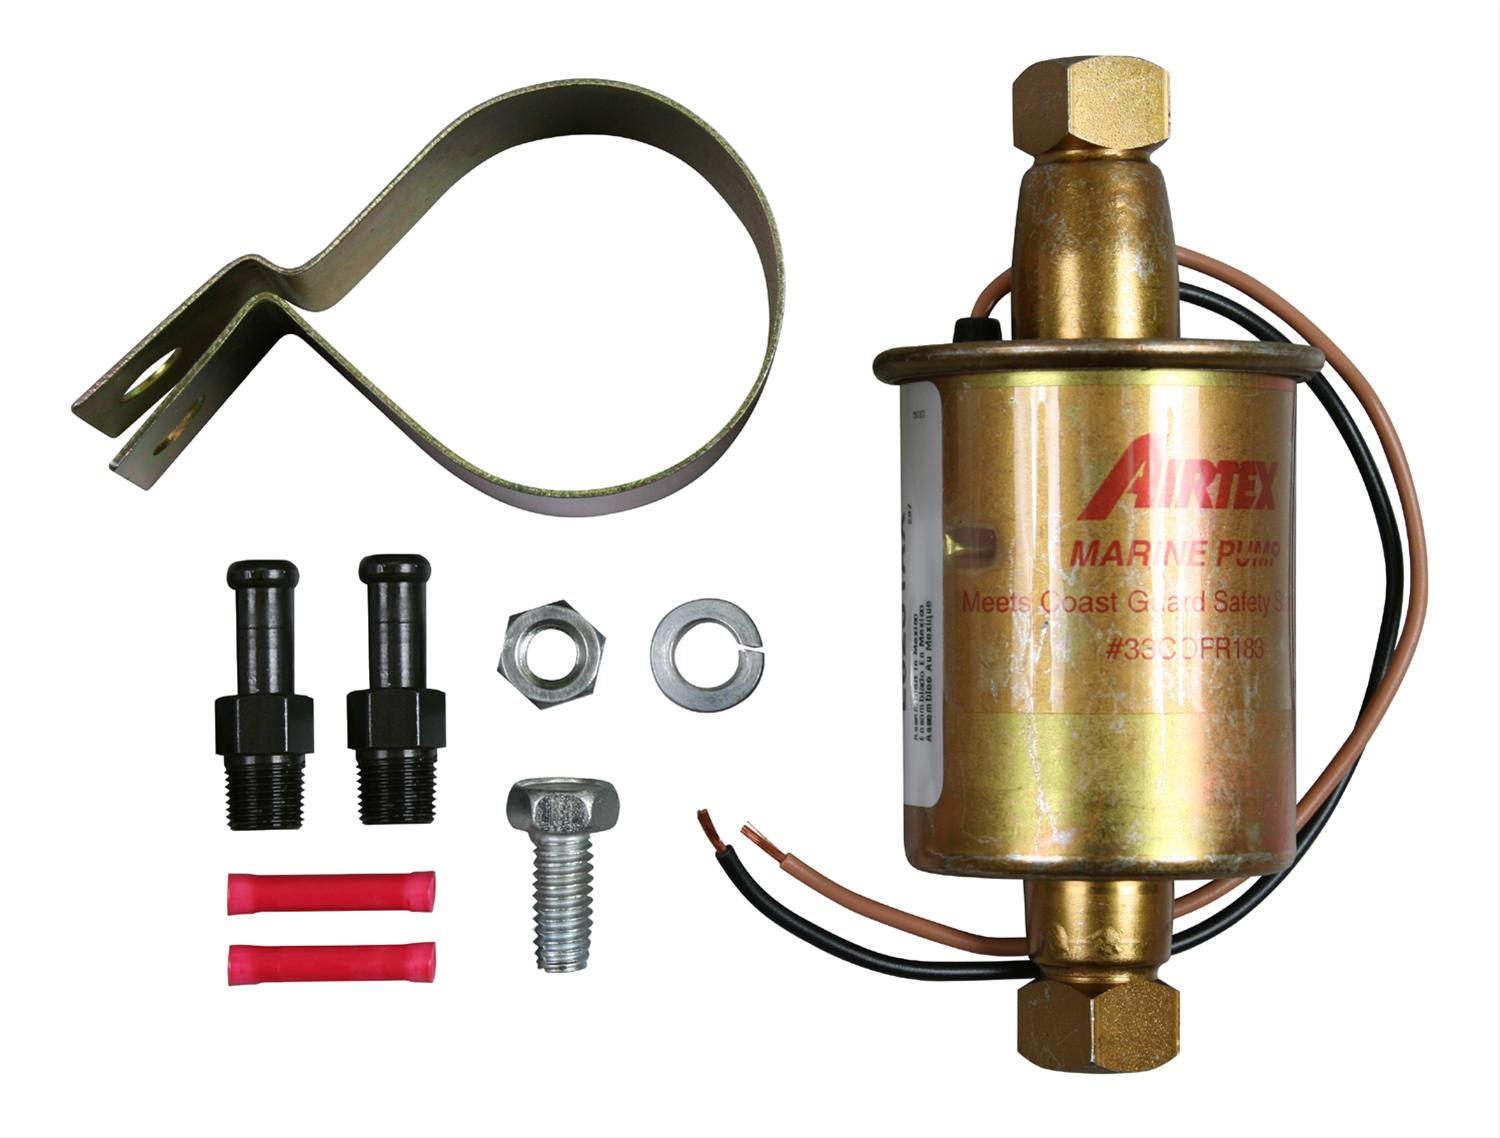 Airtex Fuel Pump Diagram Wiring Will Be A Thing Holley External Electric Pumps E8251 Free Shipping On Orders Rh Summitracing Com Parts Green Harness 2 Wires